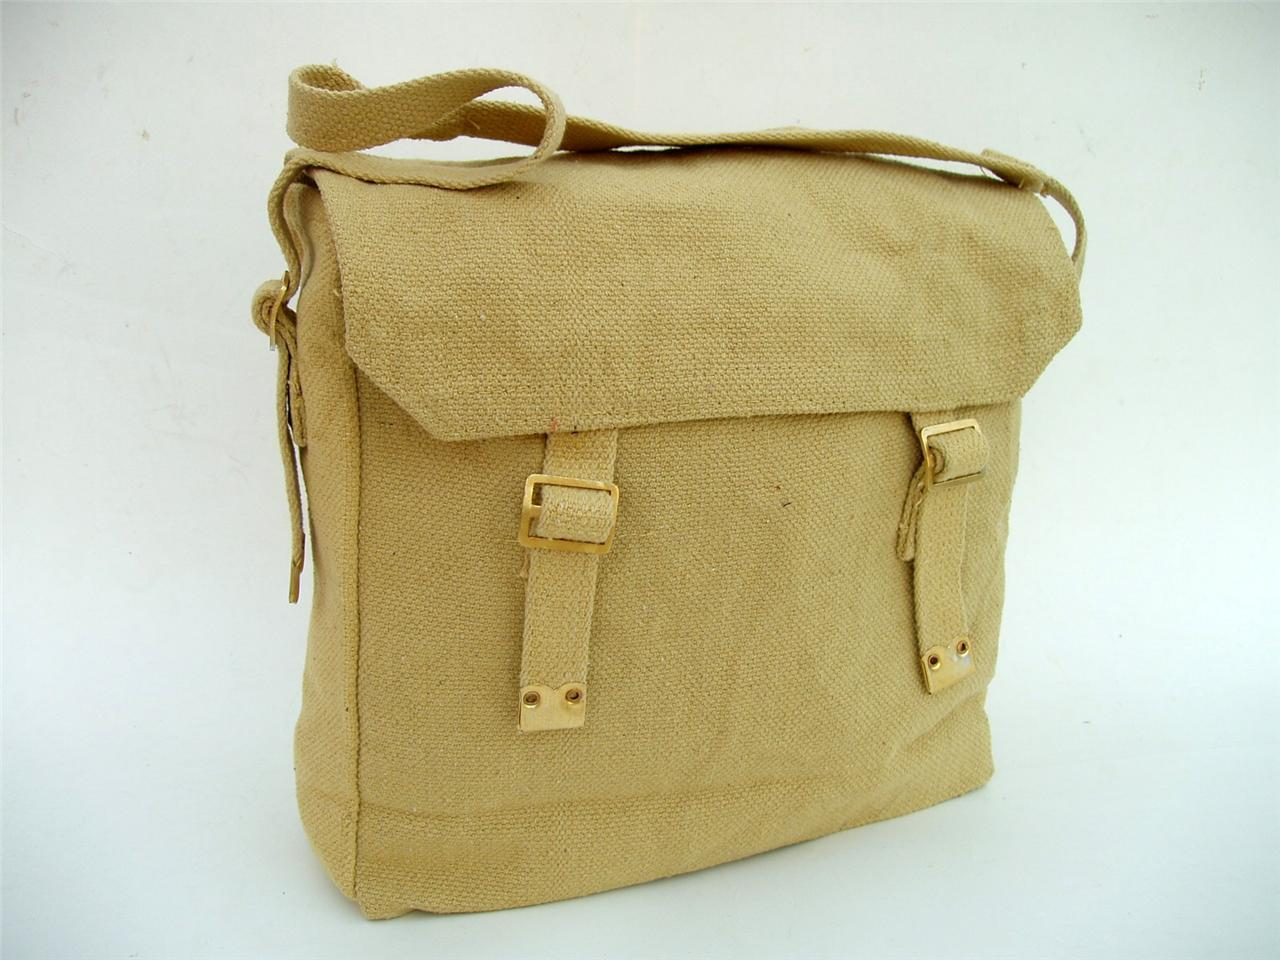 Heavy-Duty-Canvas-Messenger-Shoulder-Bag-Cross-Body-Travel-Carry-Tote-Biker-Larg